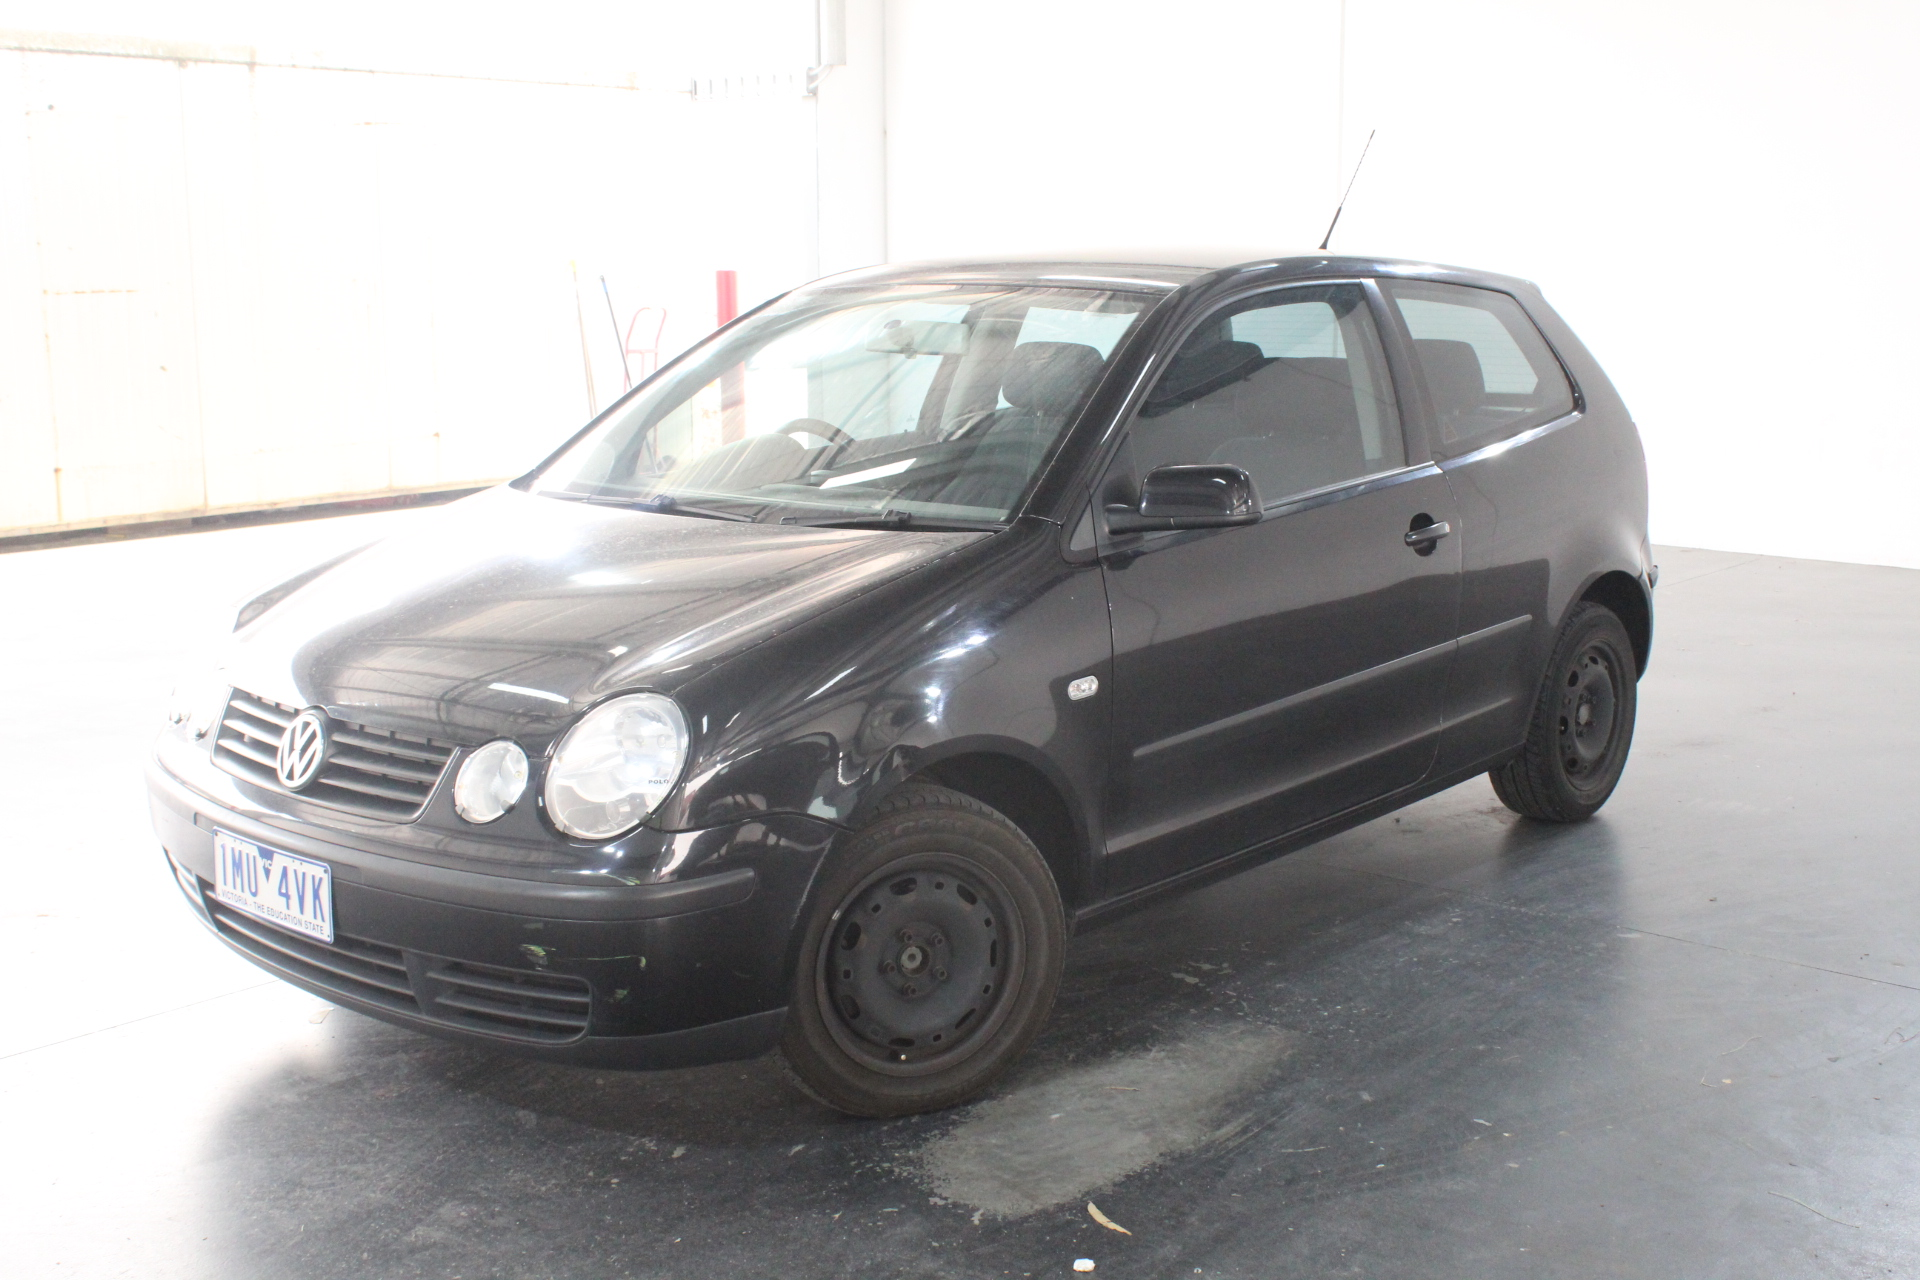 2002 Volkswagen Polo S 9N Automatic Hatchback